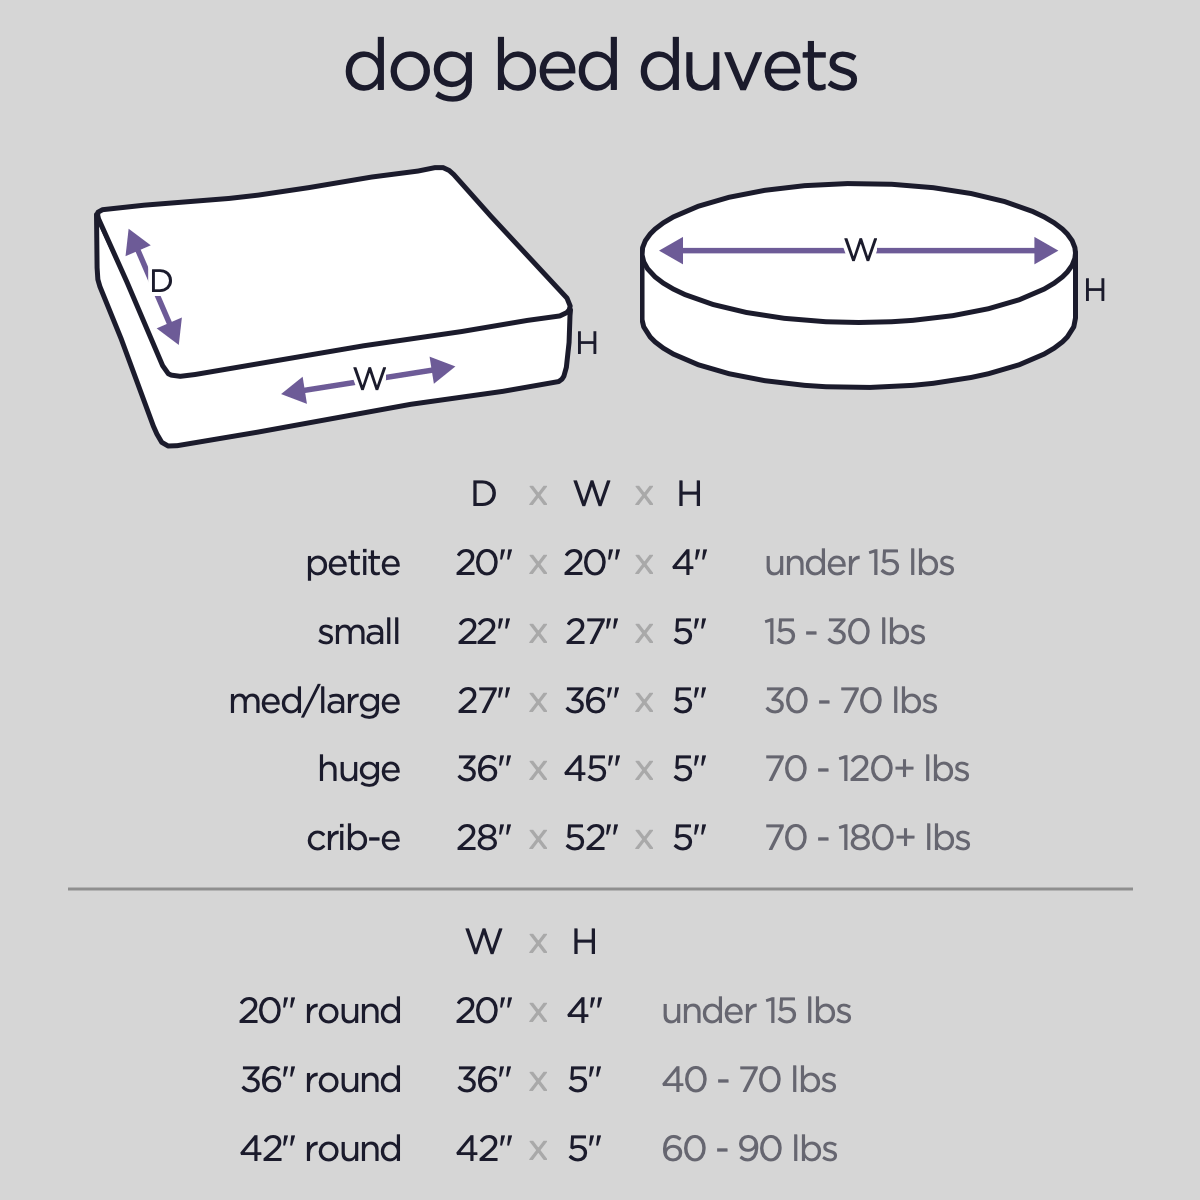 Dog Bed Duvets Dog Bed Covers Pet Bed Covers